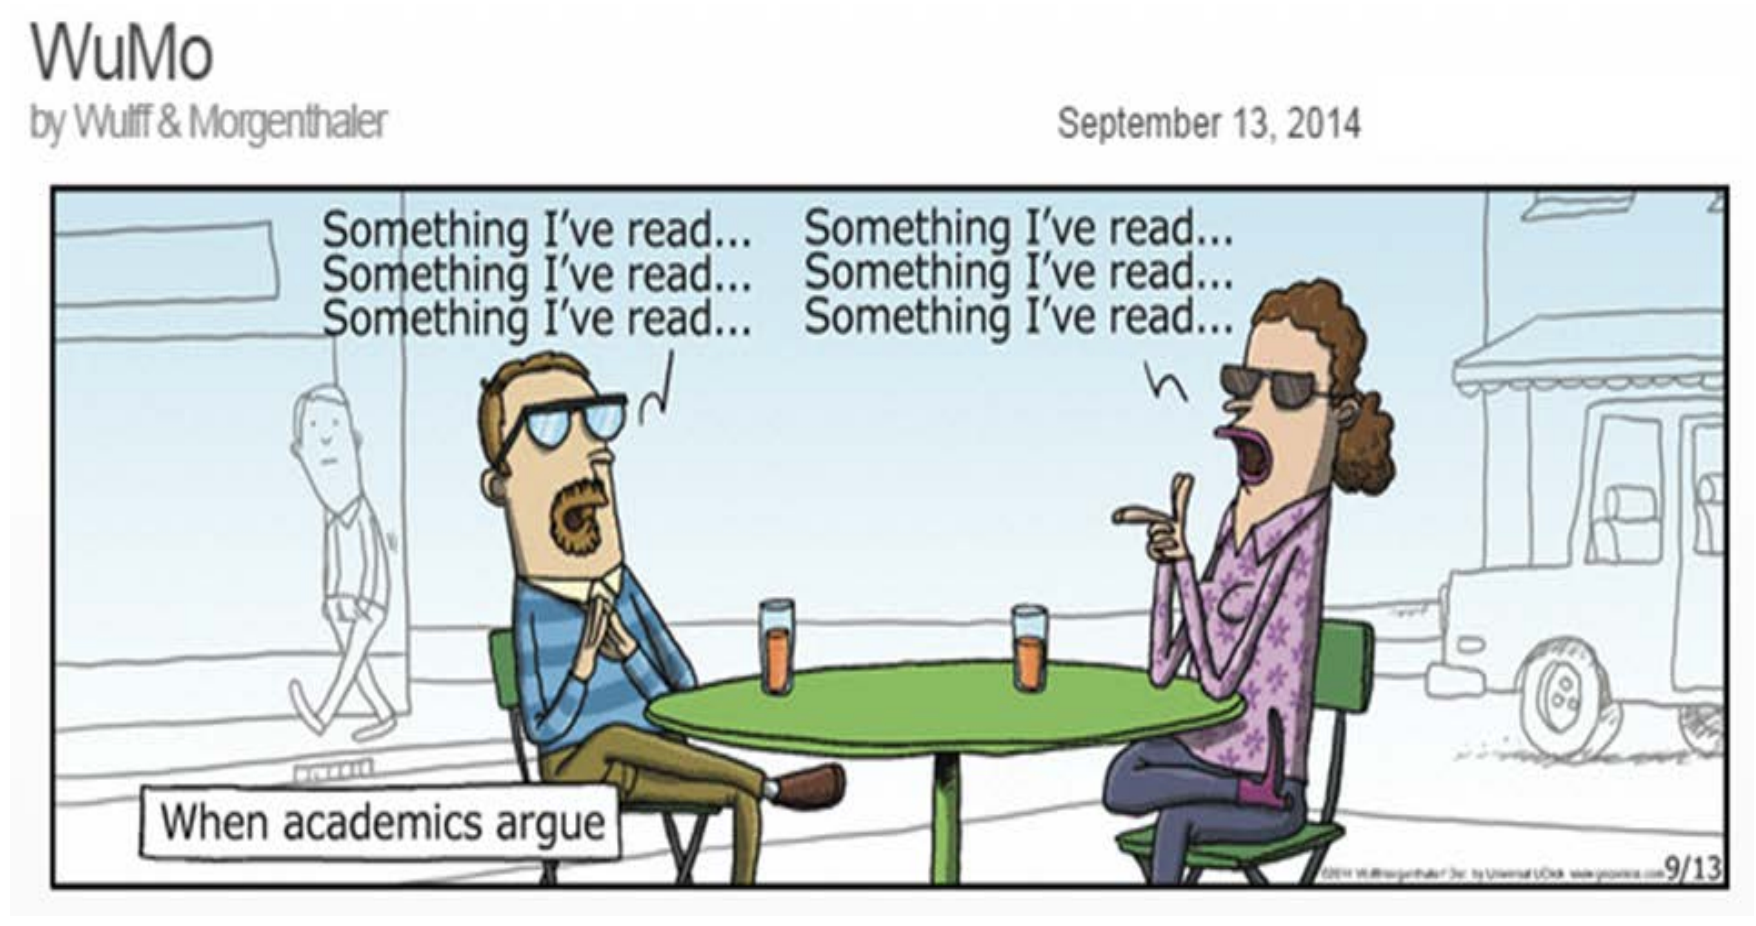 "Comic Strip: ""When academics argue"" showing two people sitting at an outdoor cafe each saying ""Something I read..."" over and over to each other"